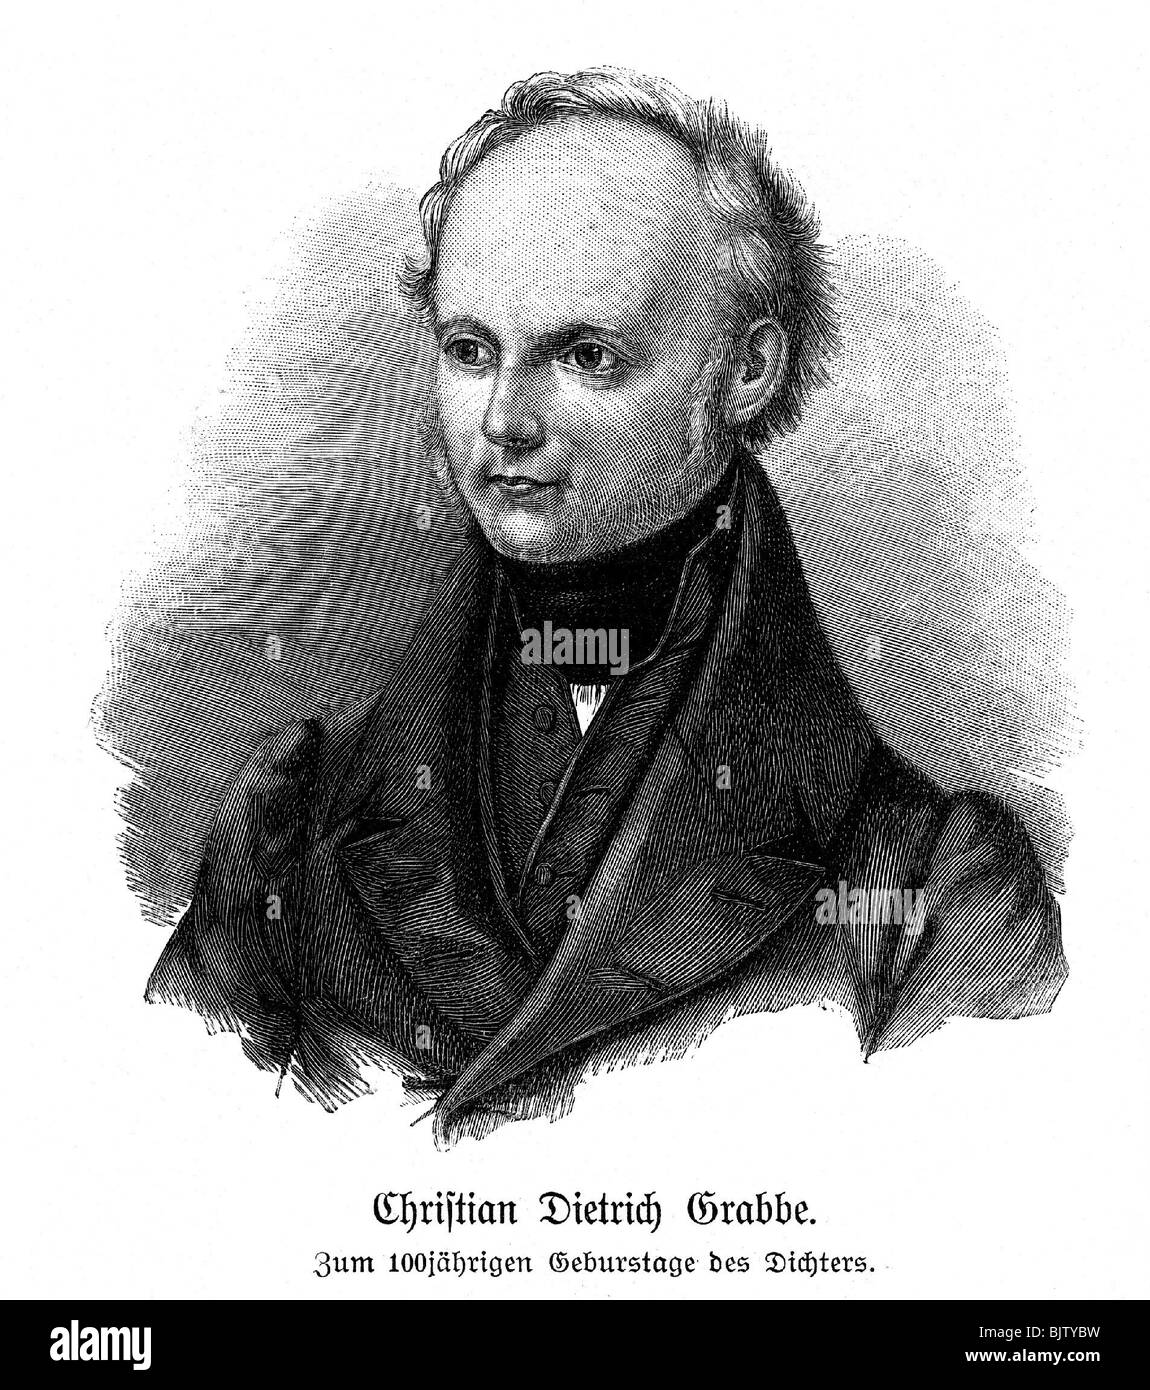 Grabbe, Christian Dietrich, 11.12.1801 - 12.9.1836, German poet, portrait, wood engraving, 1901, , Additional-Rights Stock Photo